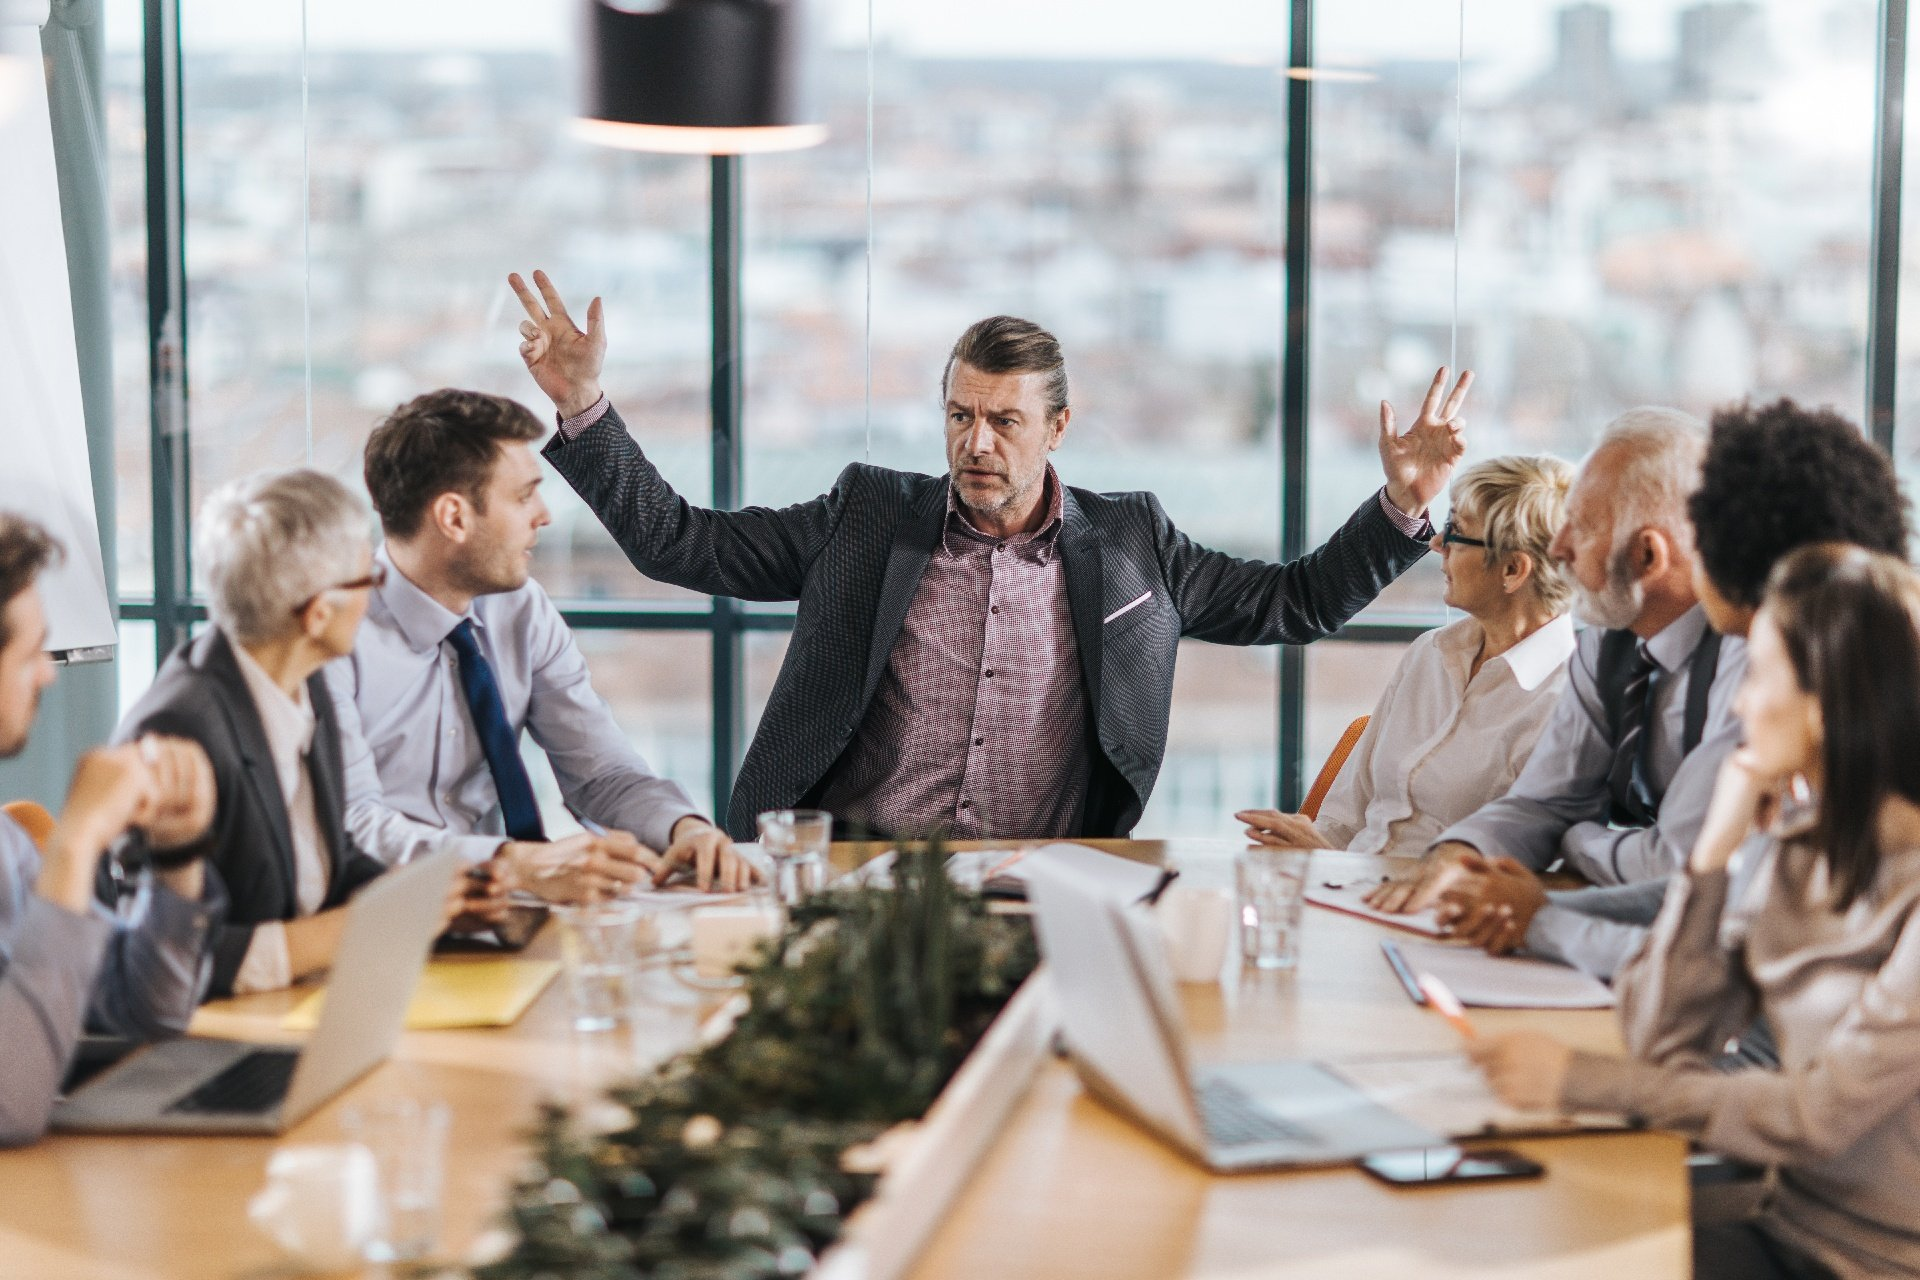 Man at in conference room gesturing angrily